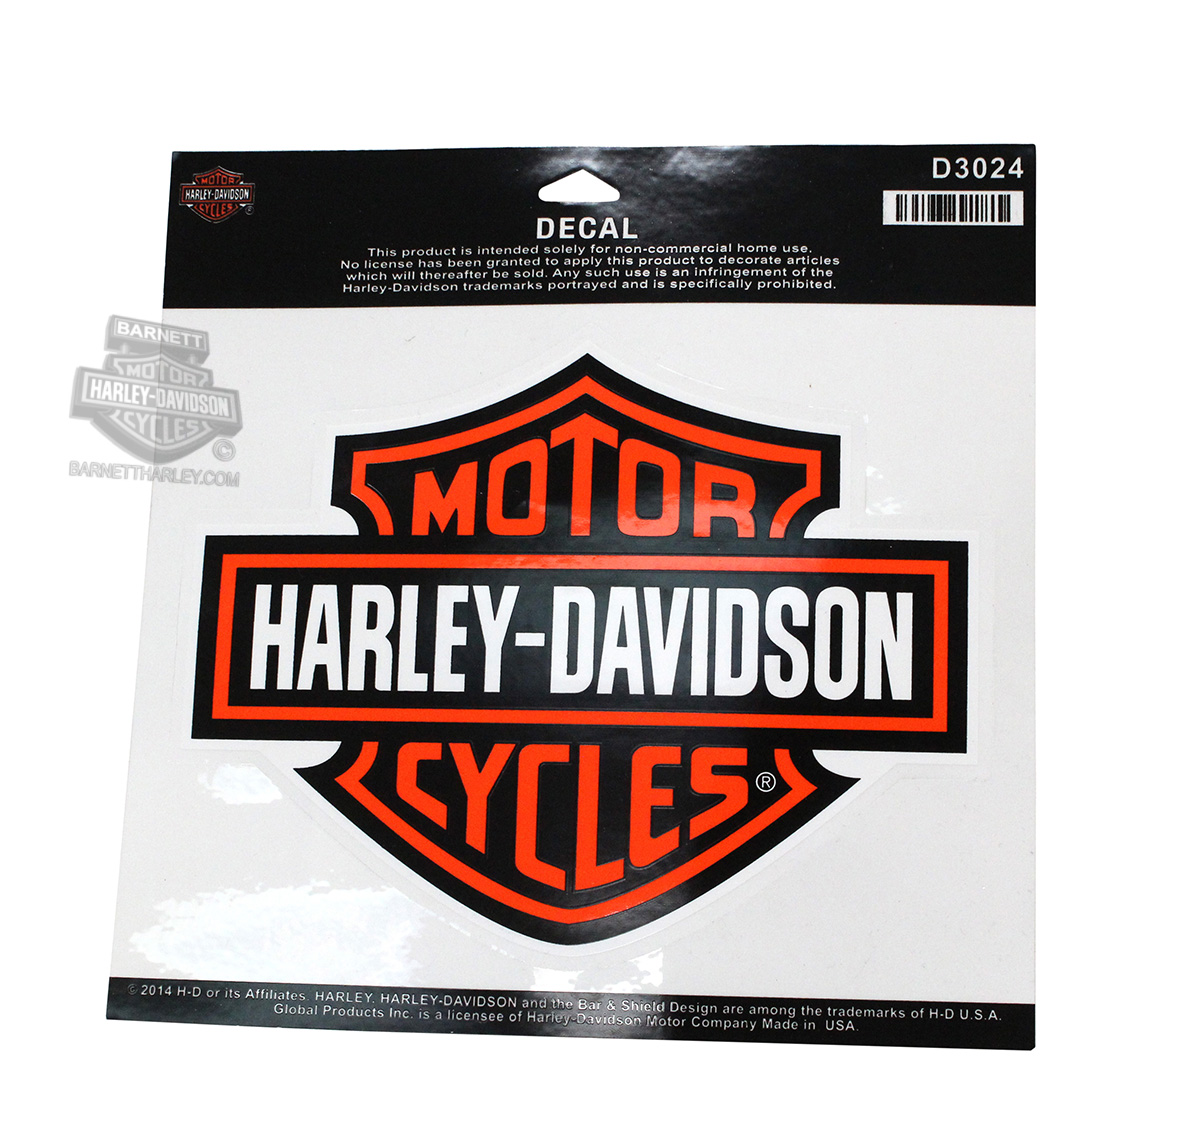 Harley Davidson 174 B Amp S Large Decal D3024